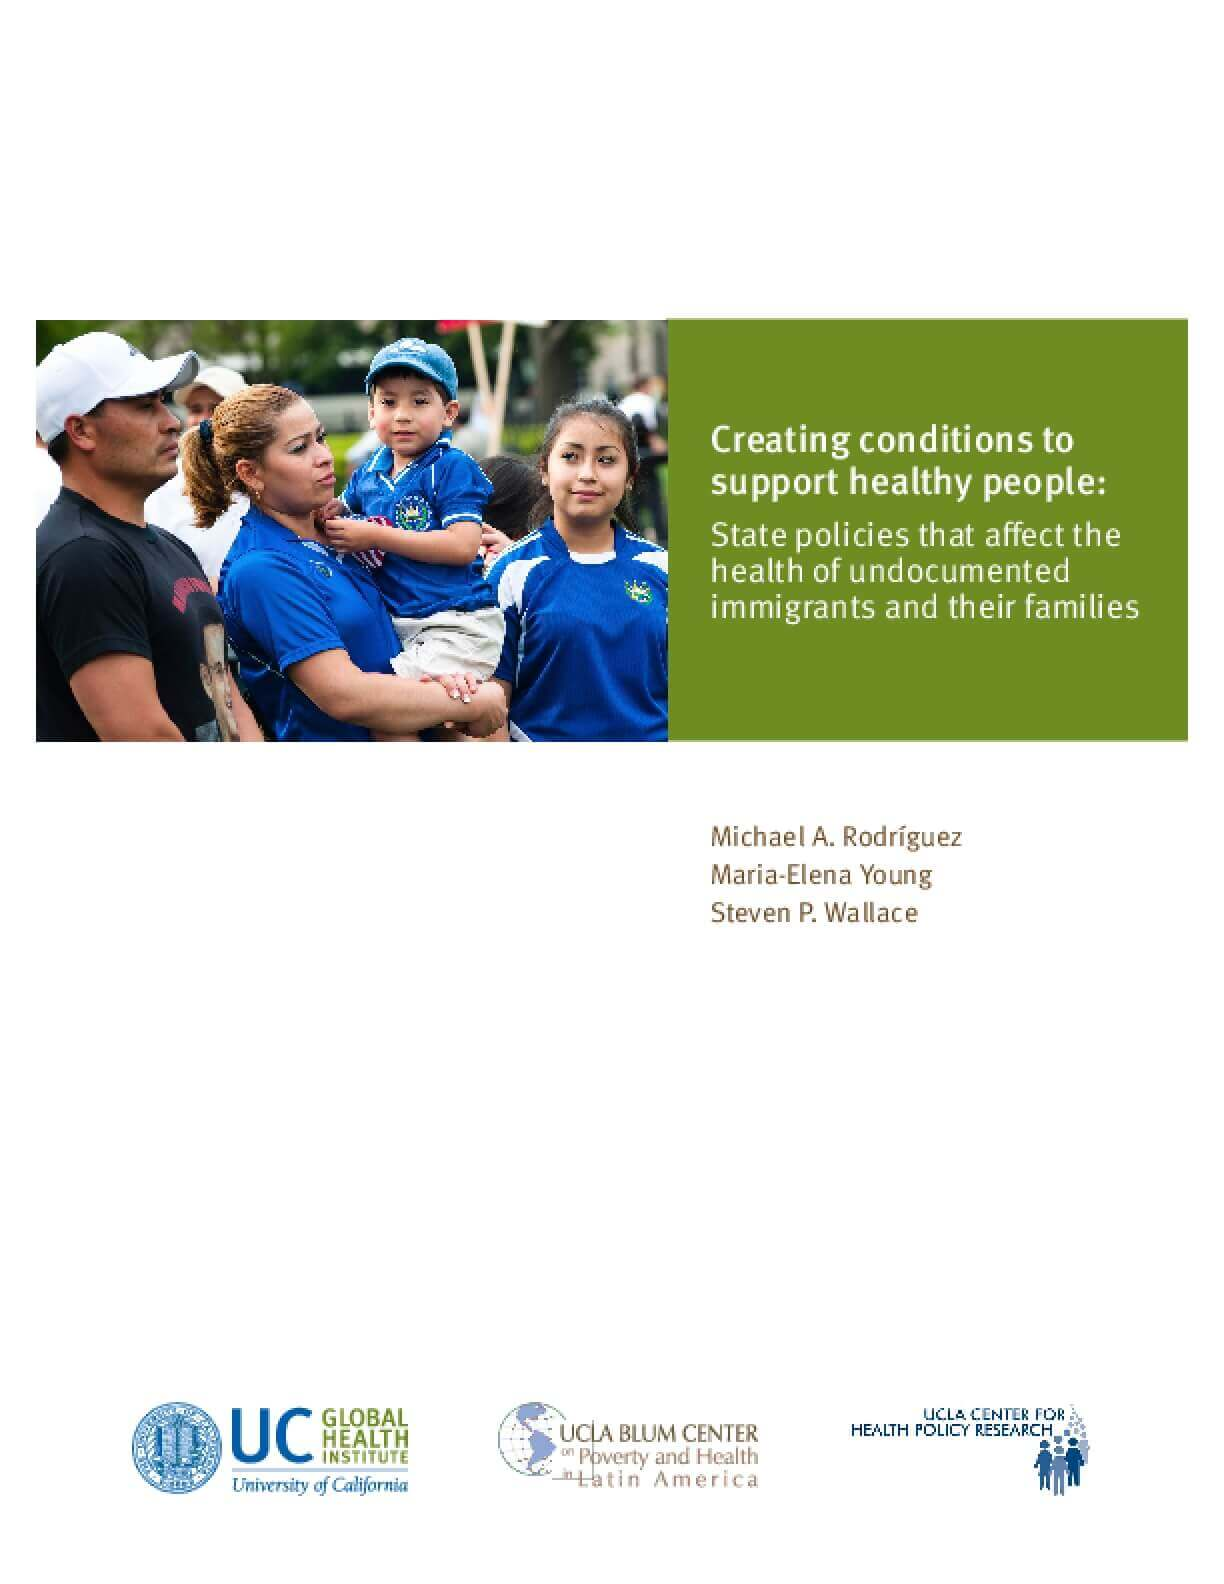 Creating conditions to support healthy people: State policies that affect the health of undocumented immigrants and their families